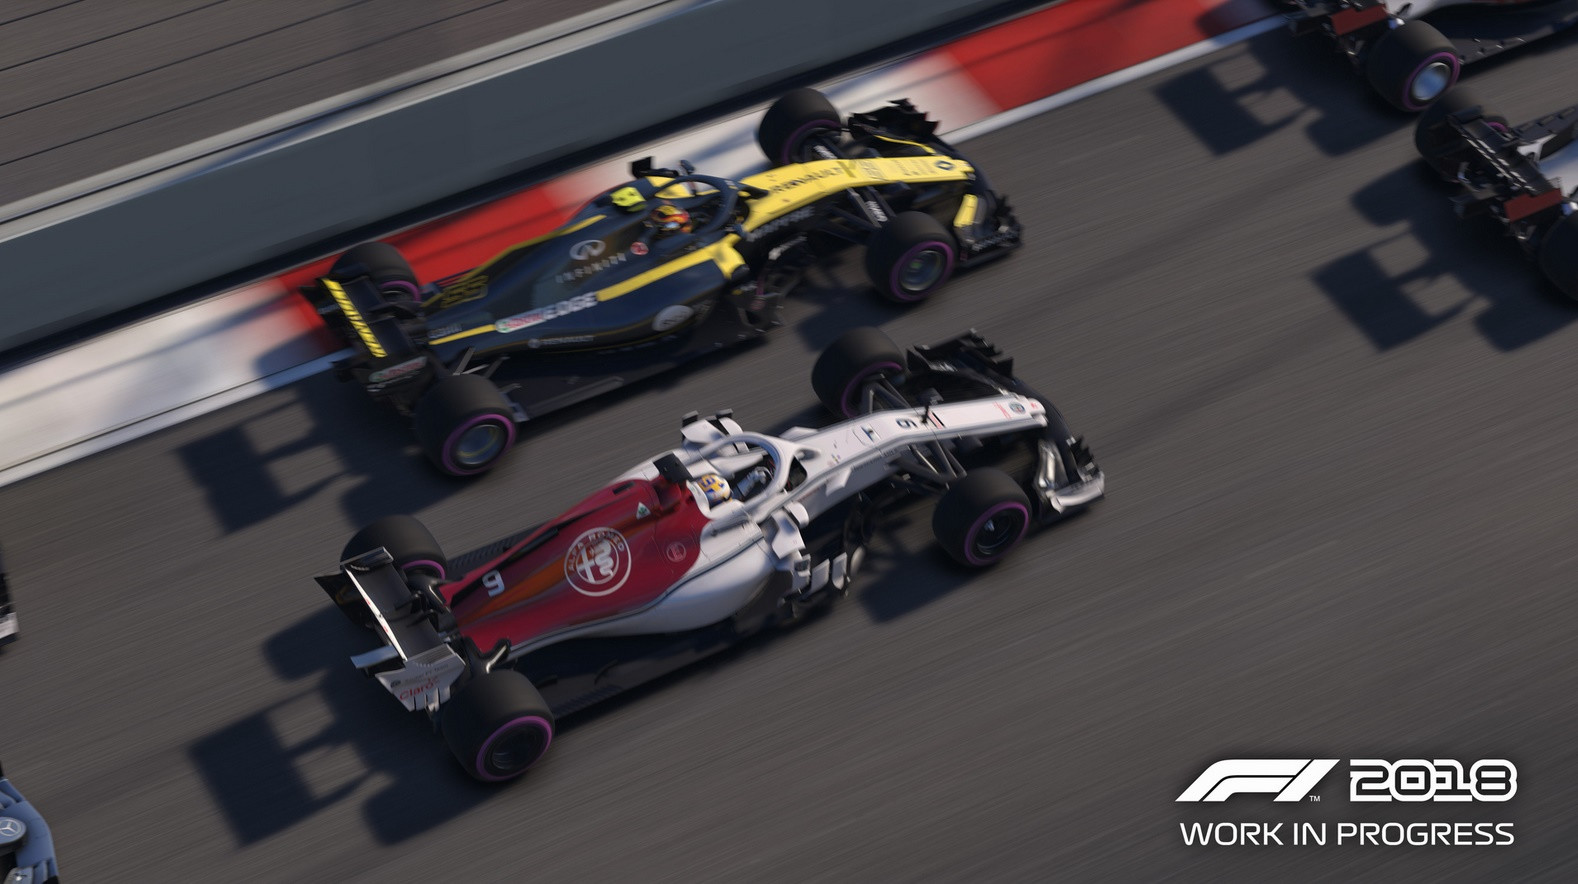 Codemasters Releases Official Screenshots for F1 2018 - Better